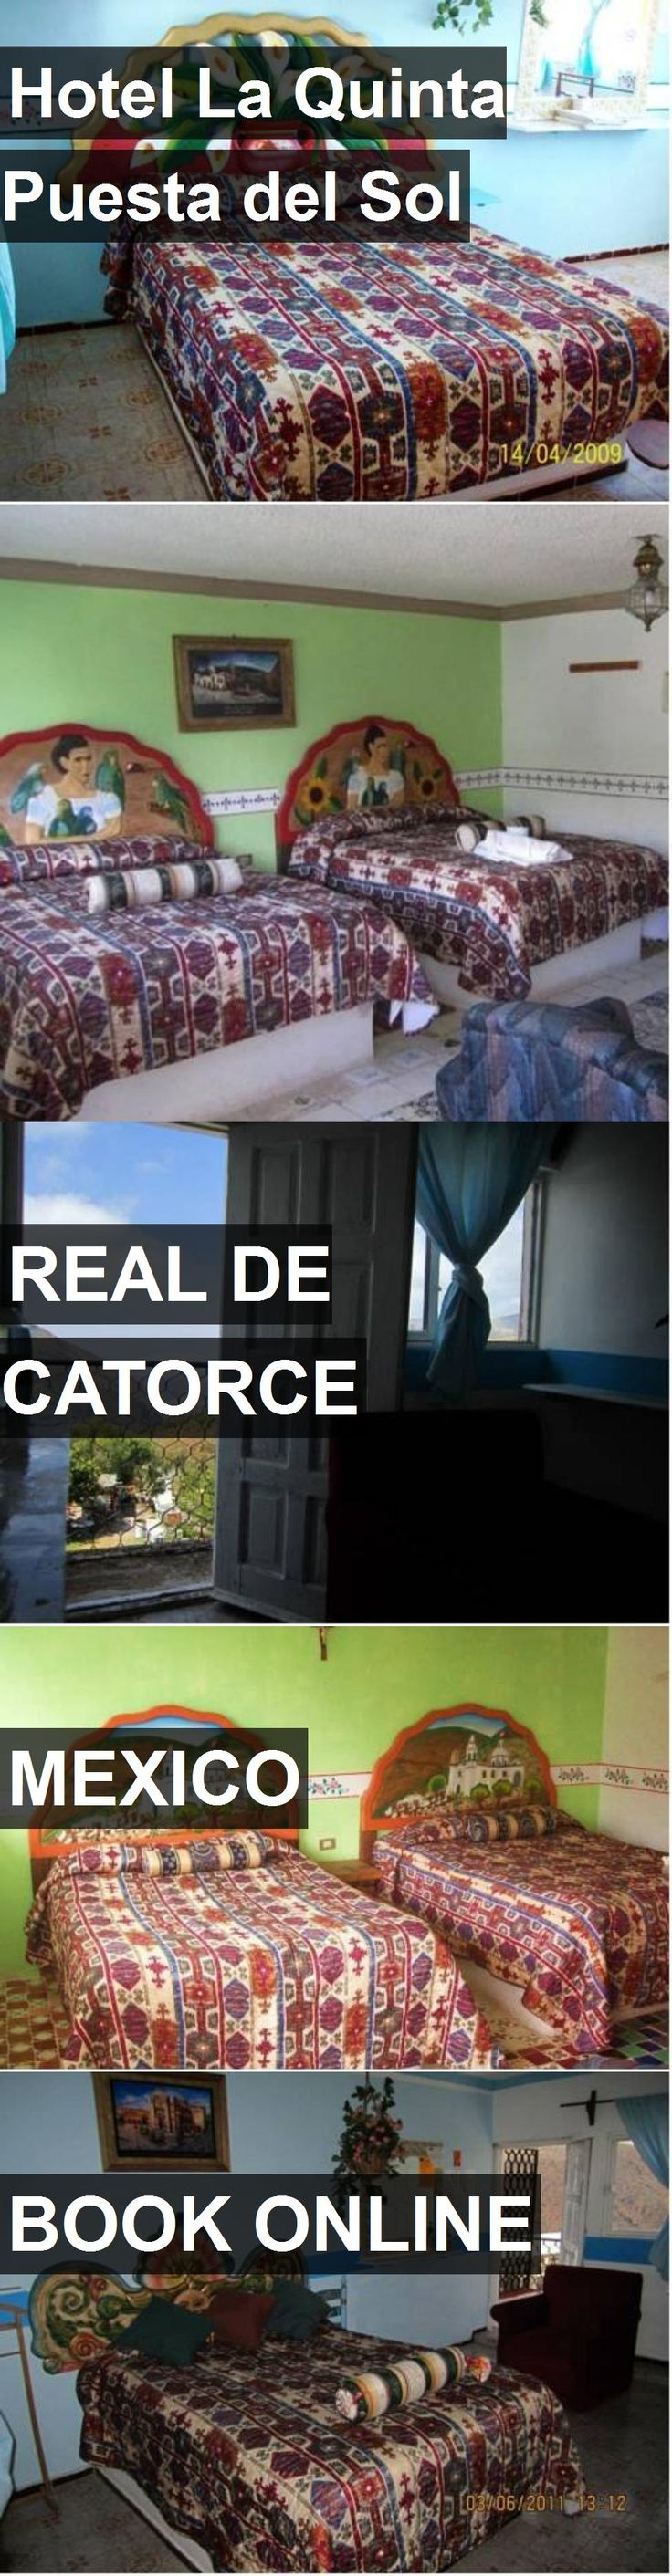 Hotel La Quinta Puesta del Sol in Real de Catorce, Mexico. For more information, photos, reviews and best prices please follow the link. #Mexico #RealdeCatorce #travel #vacation #hotel